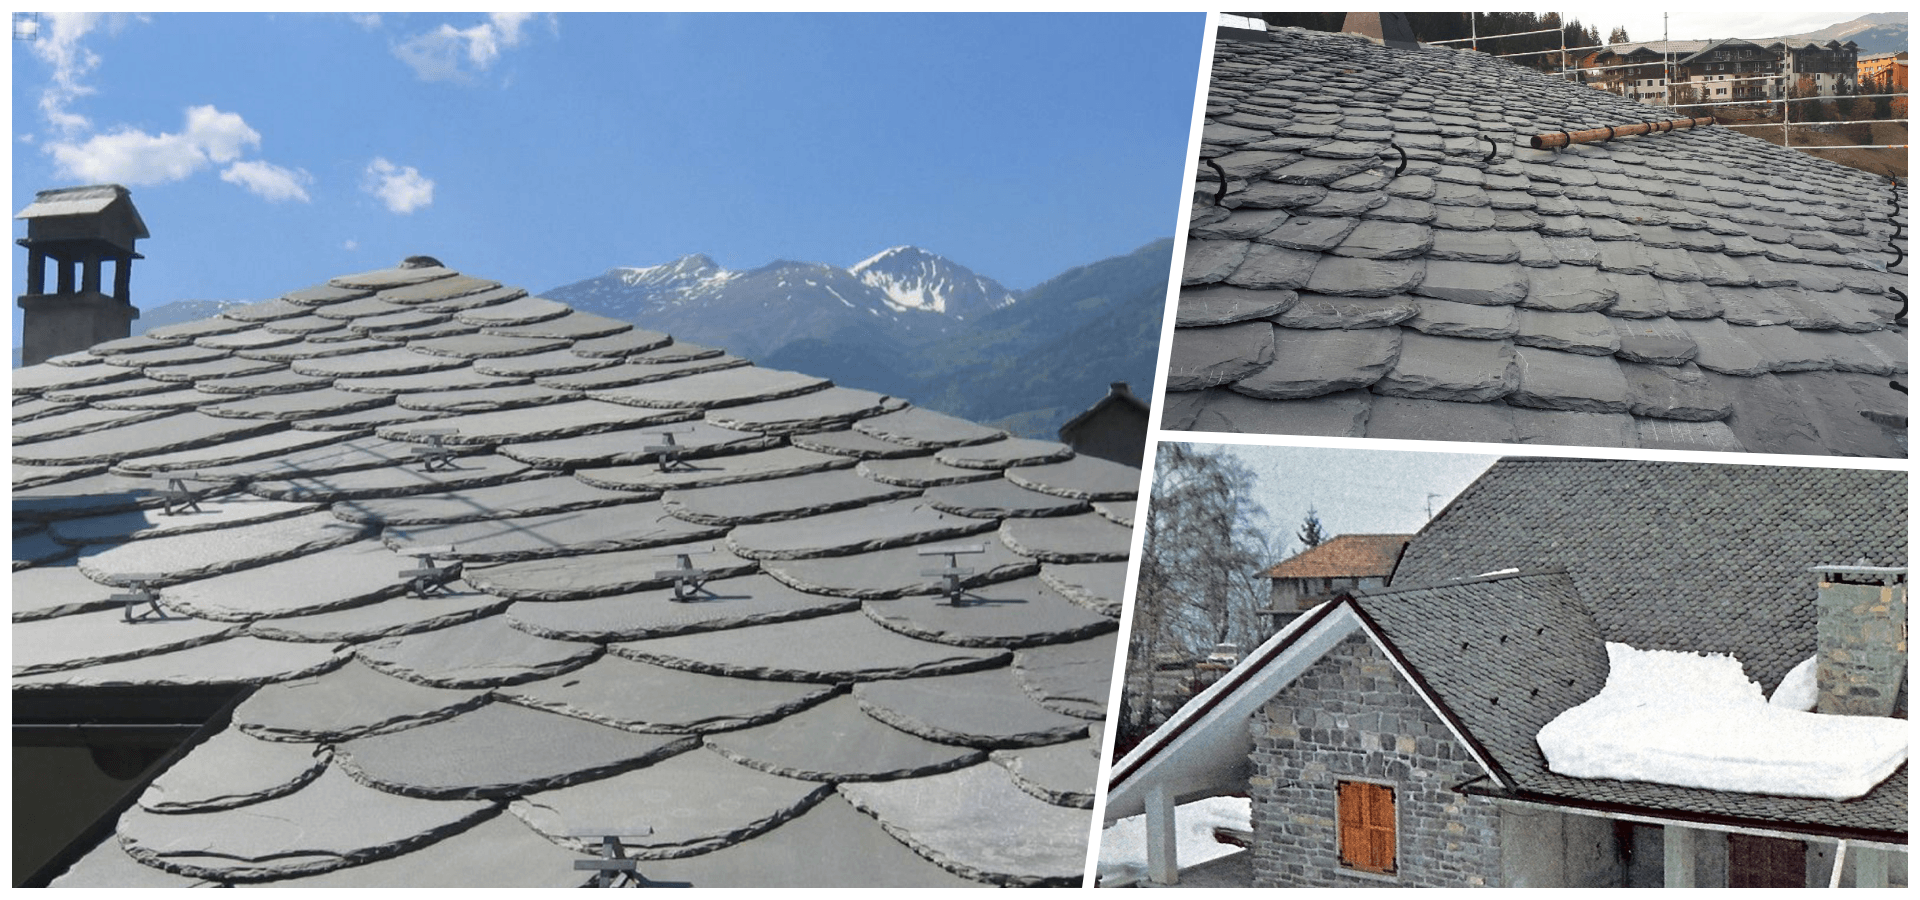 Roofing Tiles SUpplier Exporter Rachana Stones India